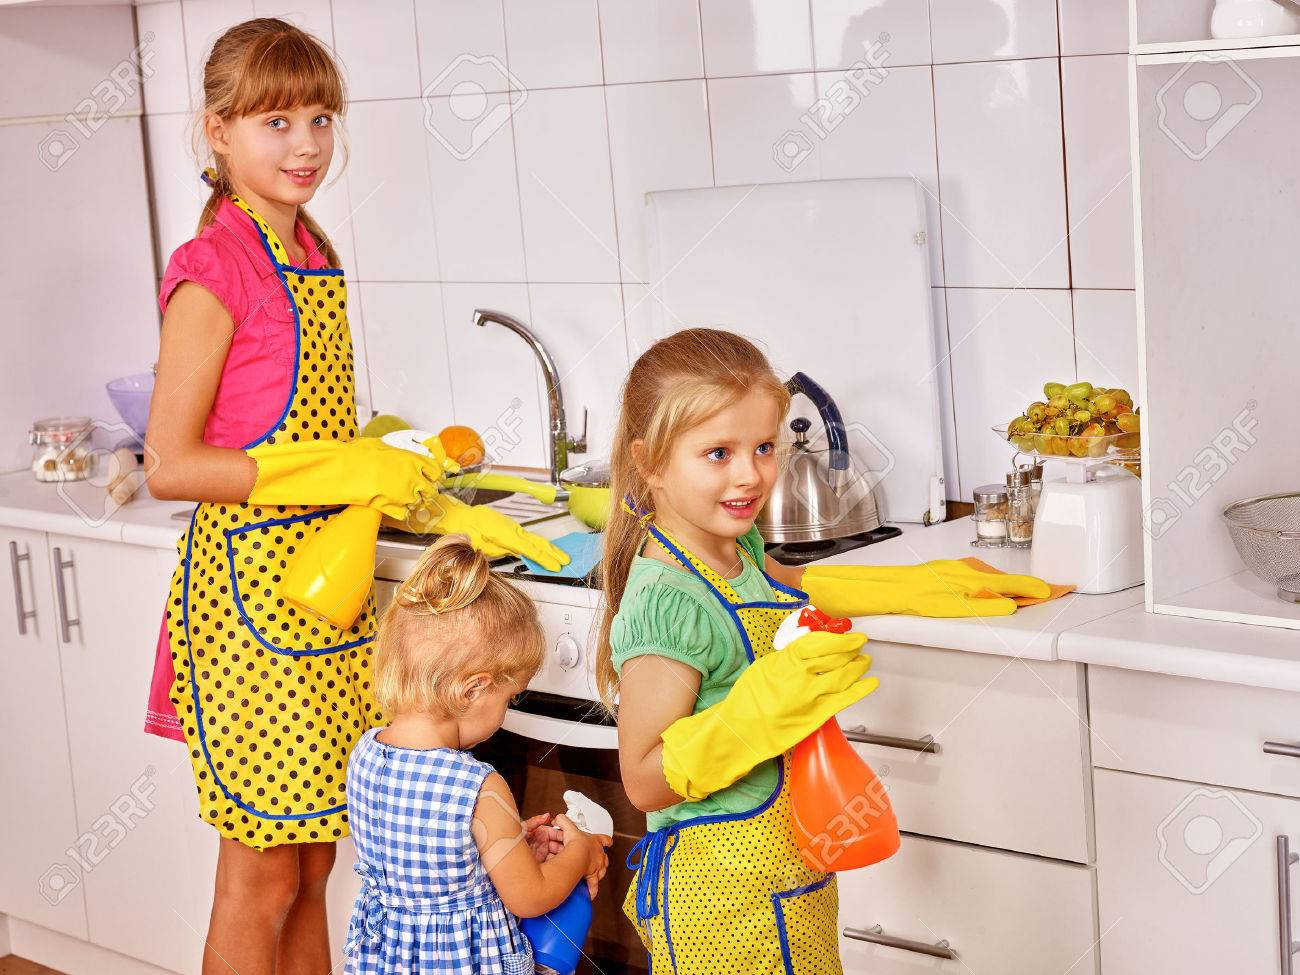 White gloves apron cleaning services - Dish Washing Gloves Children Little Girl Cooking At Kitchen Stock Photo